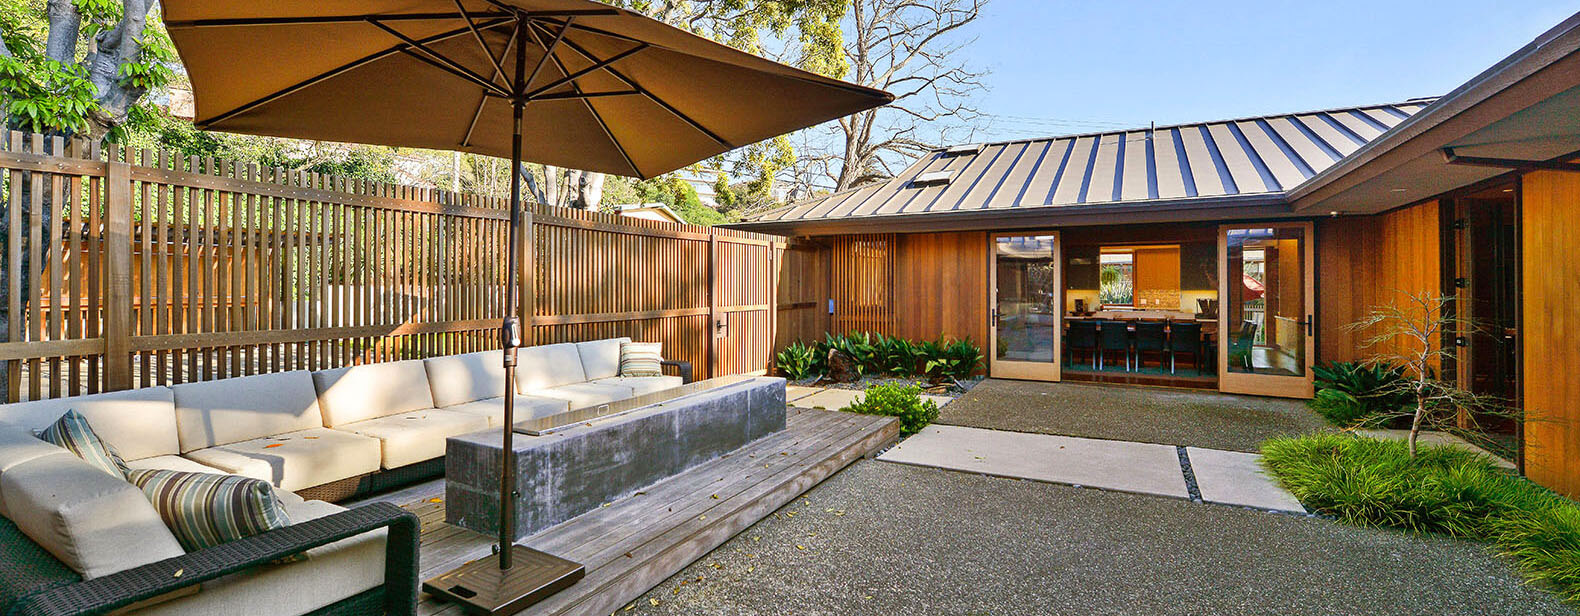 Reusable and recycled materials - Green Home Renovations